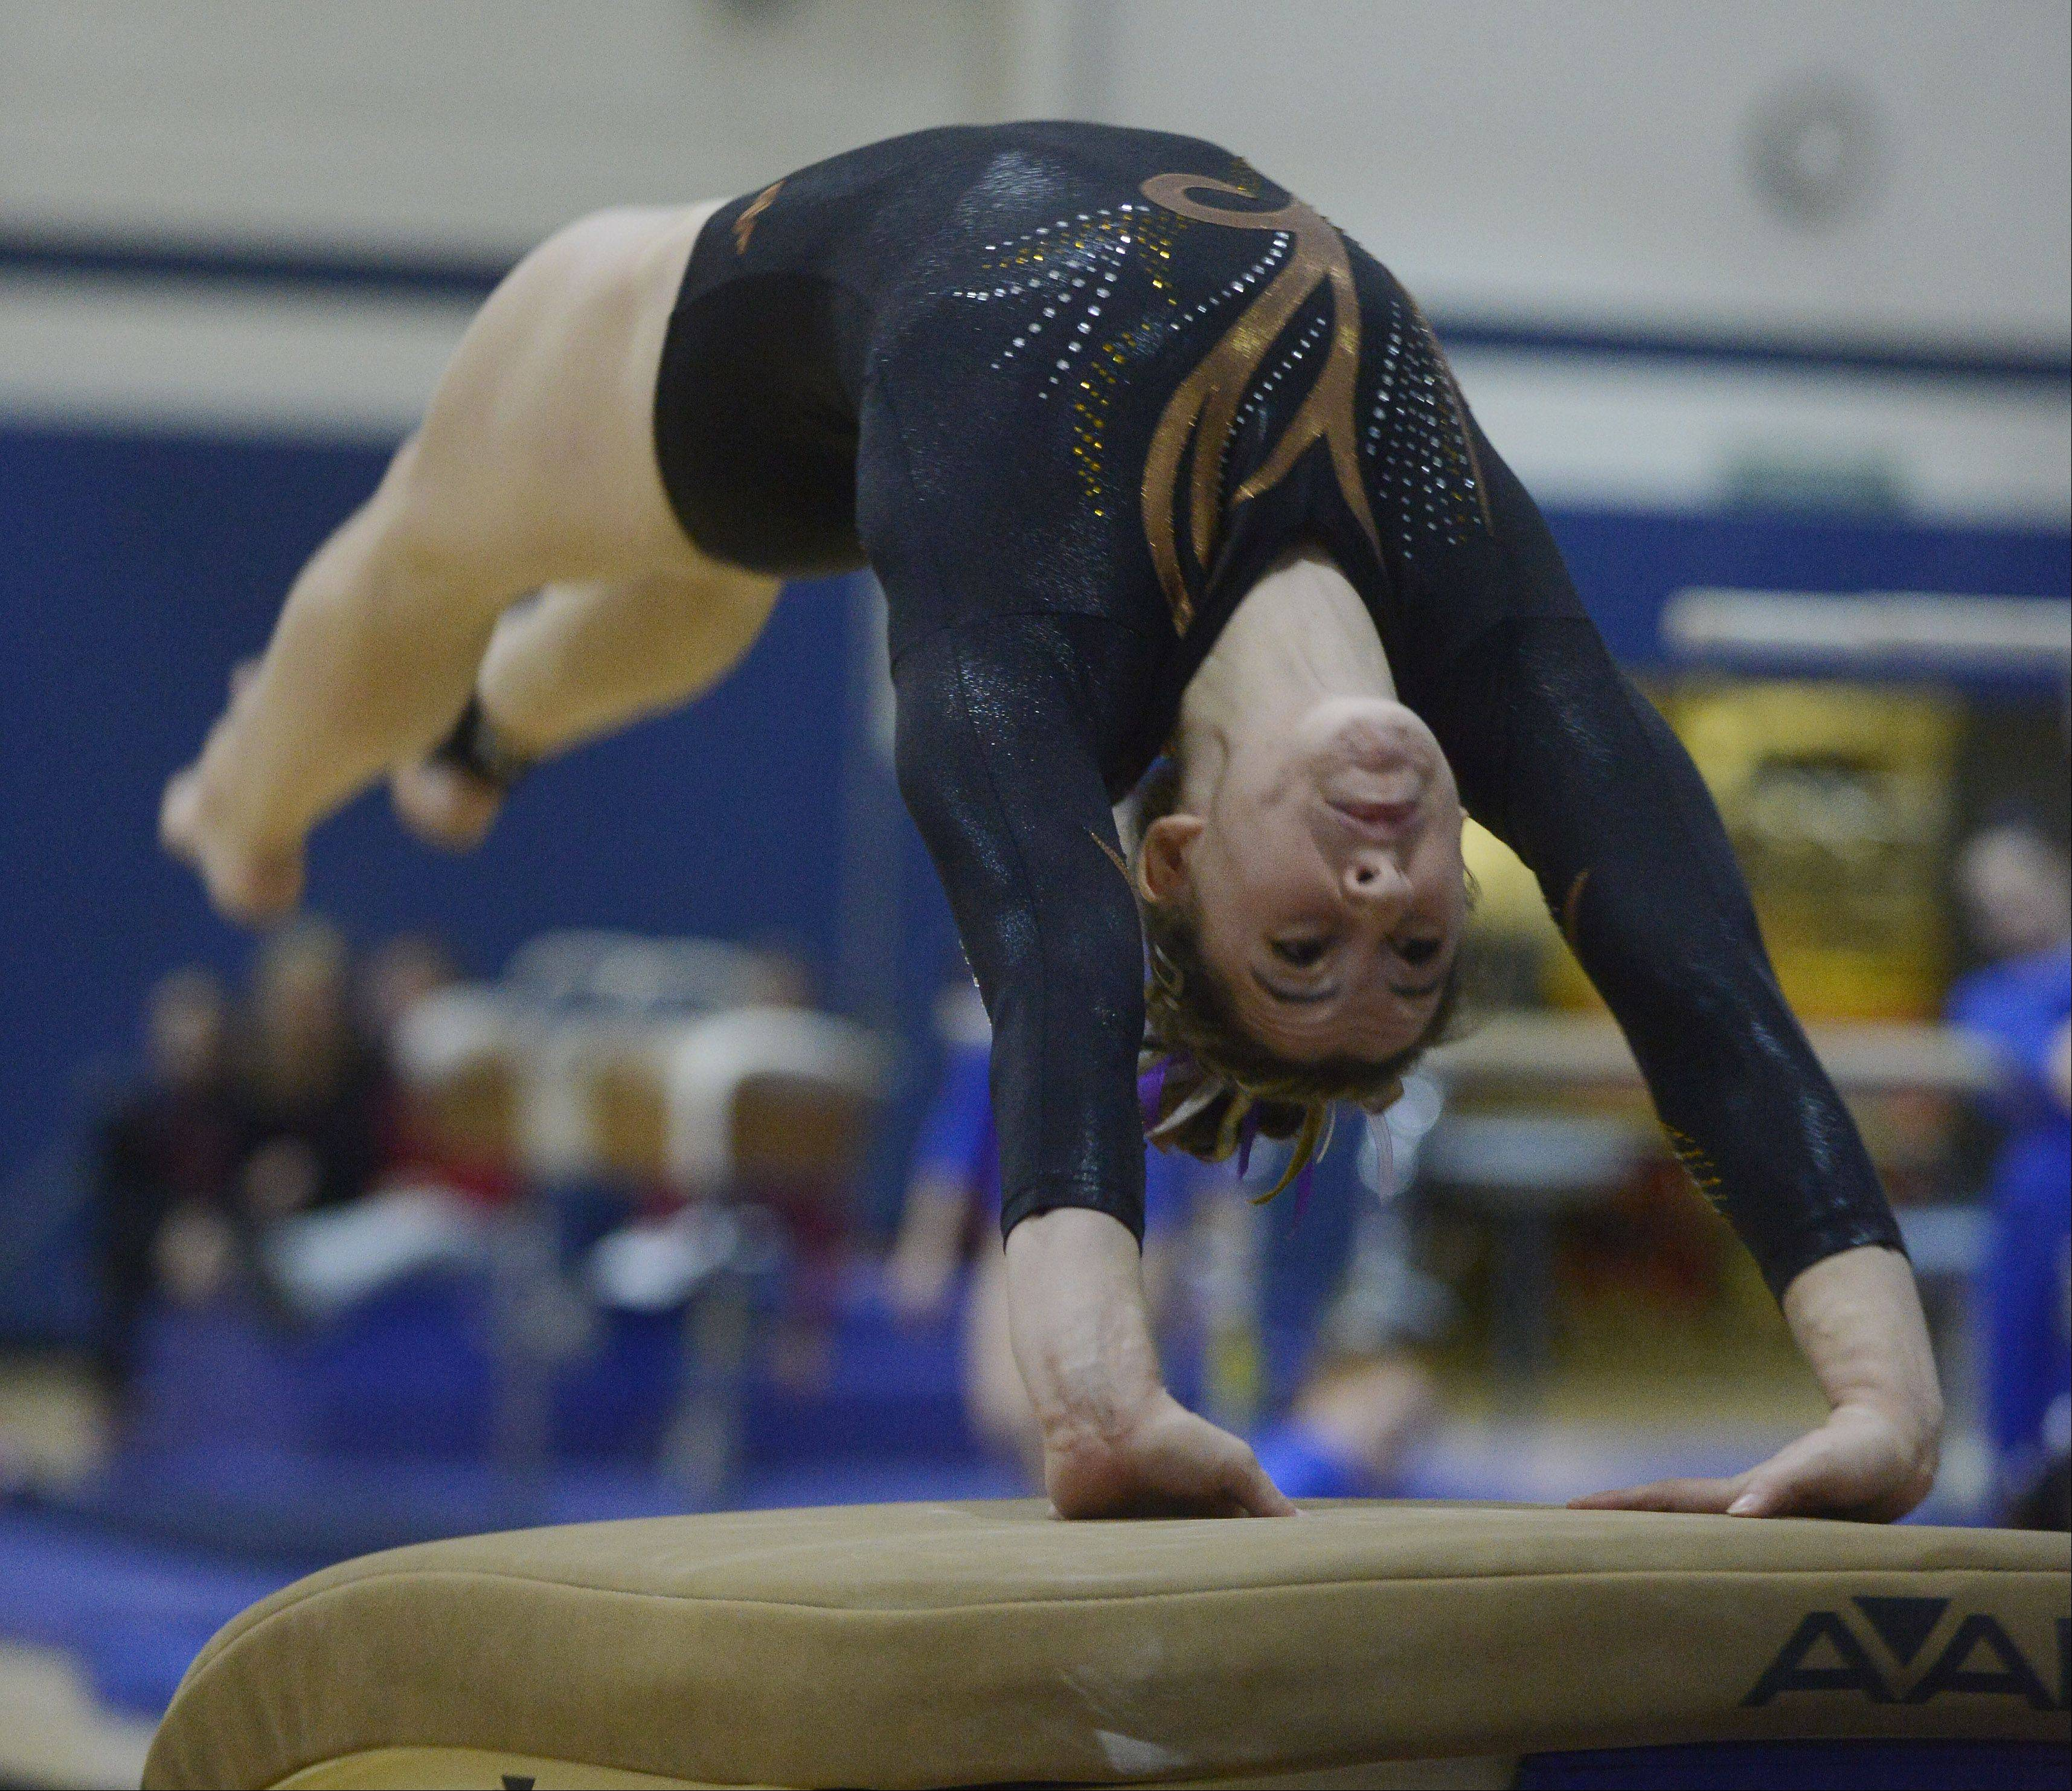 Carmel's Lauren Feely competes on the vault during the Conant girls gymnastics invite Saturday. She won the event with a 9.75 and also won the all-around to lead the Corsairs to the team title.